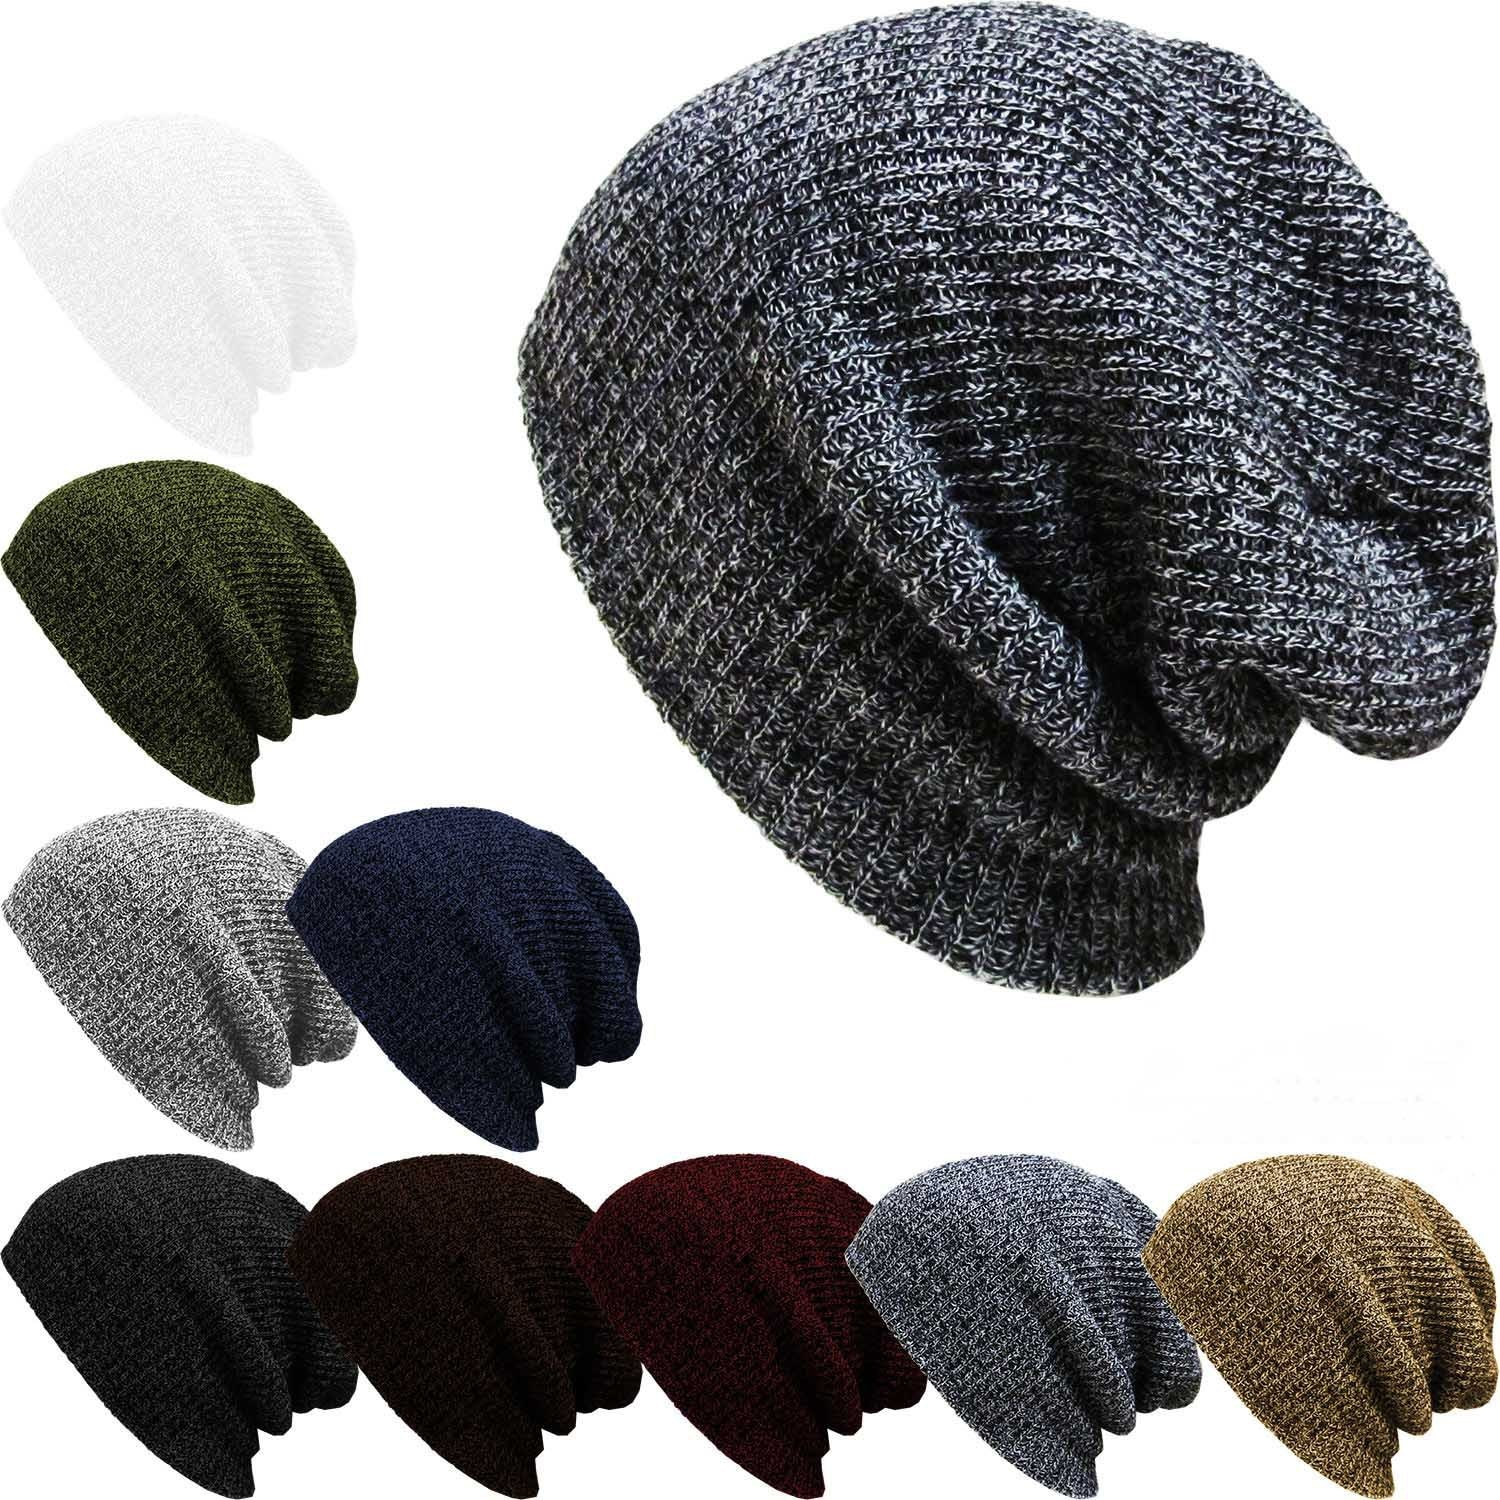 Knitted Wool Hat Autumn Winter Popular Crossover Men's Street Dance Pullover Knitted Wool Hat Outdoo